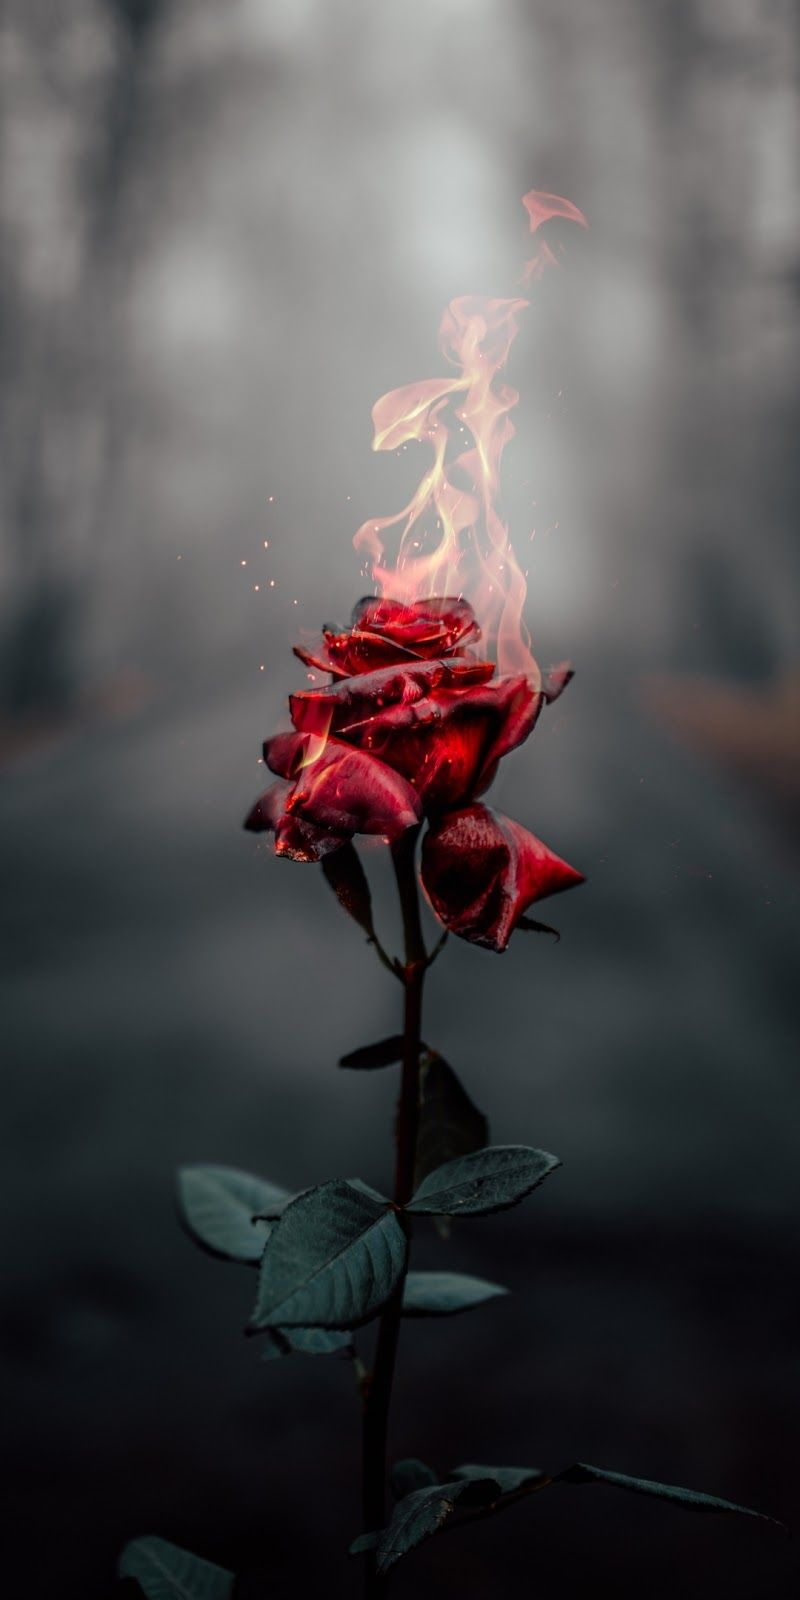 Rose On Fire Photography Wallpaper Nature Photography Fire Photography